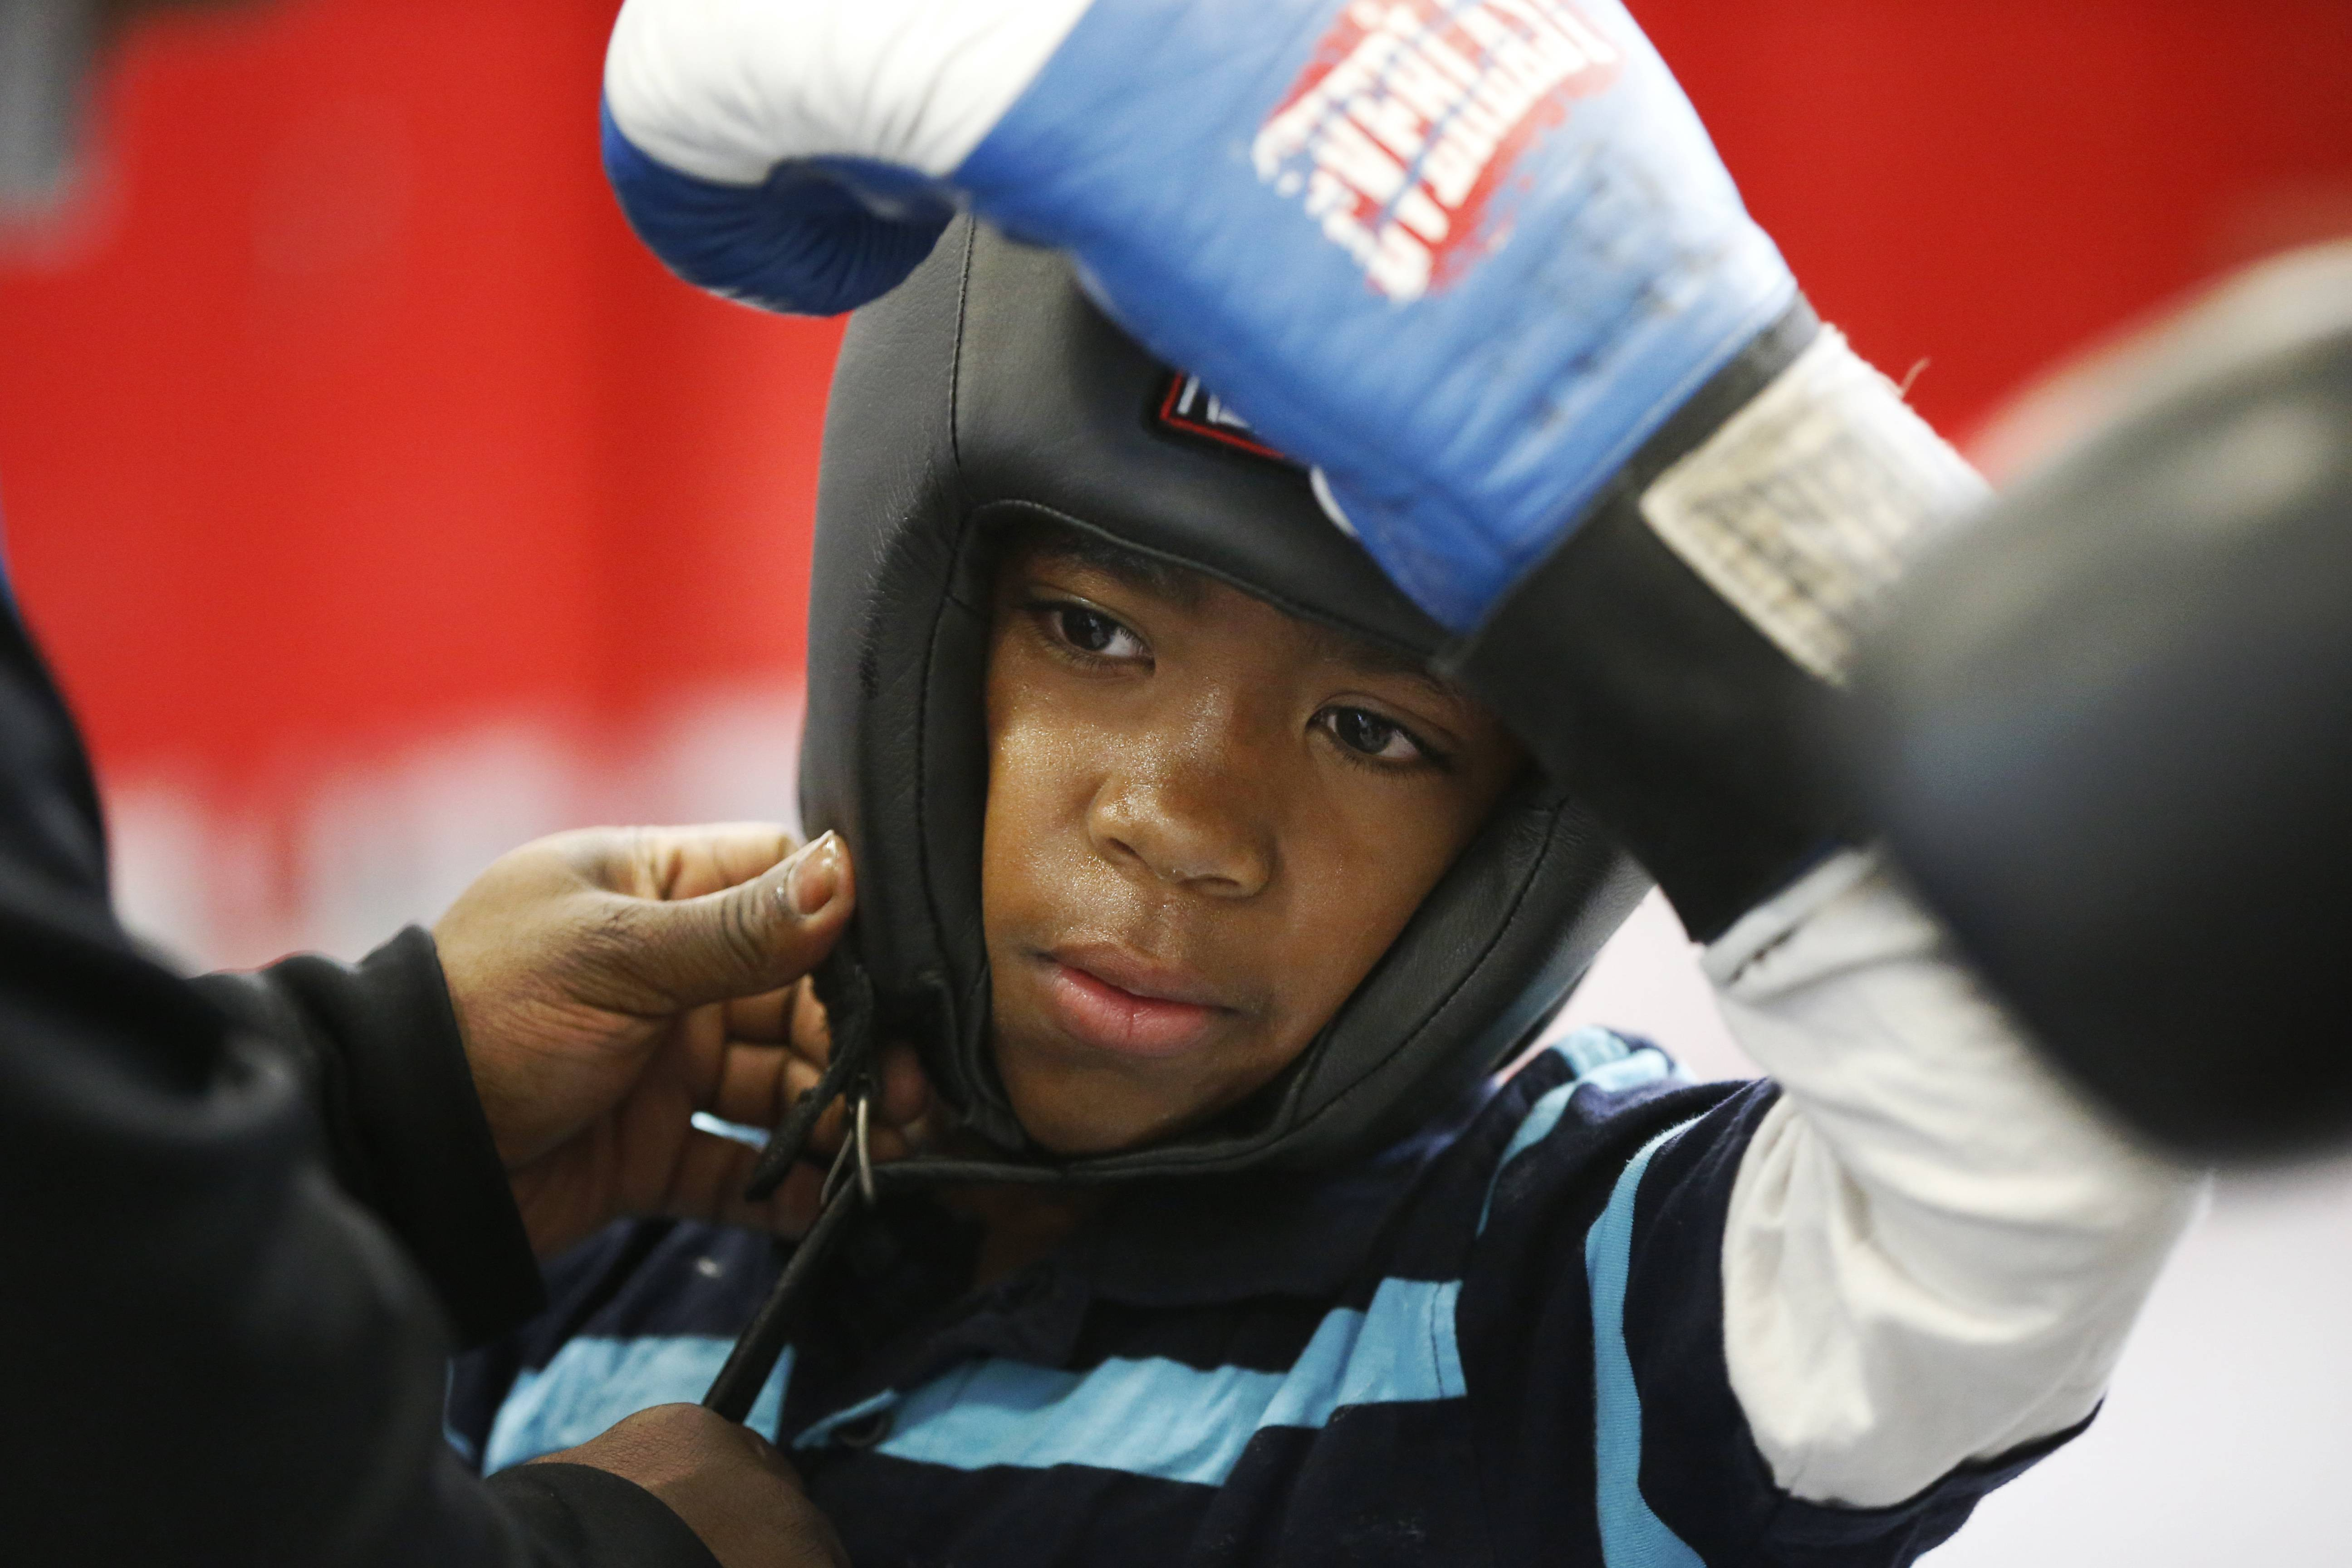 Rahgaleak Bartee, 12, helped with protective gear before boxing in the gym of the DC Promise Neighborhood Initiative (DCPNI) after-school center in the Kenilworth-Parkside neighborhood of Washington.